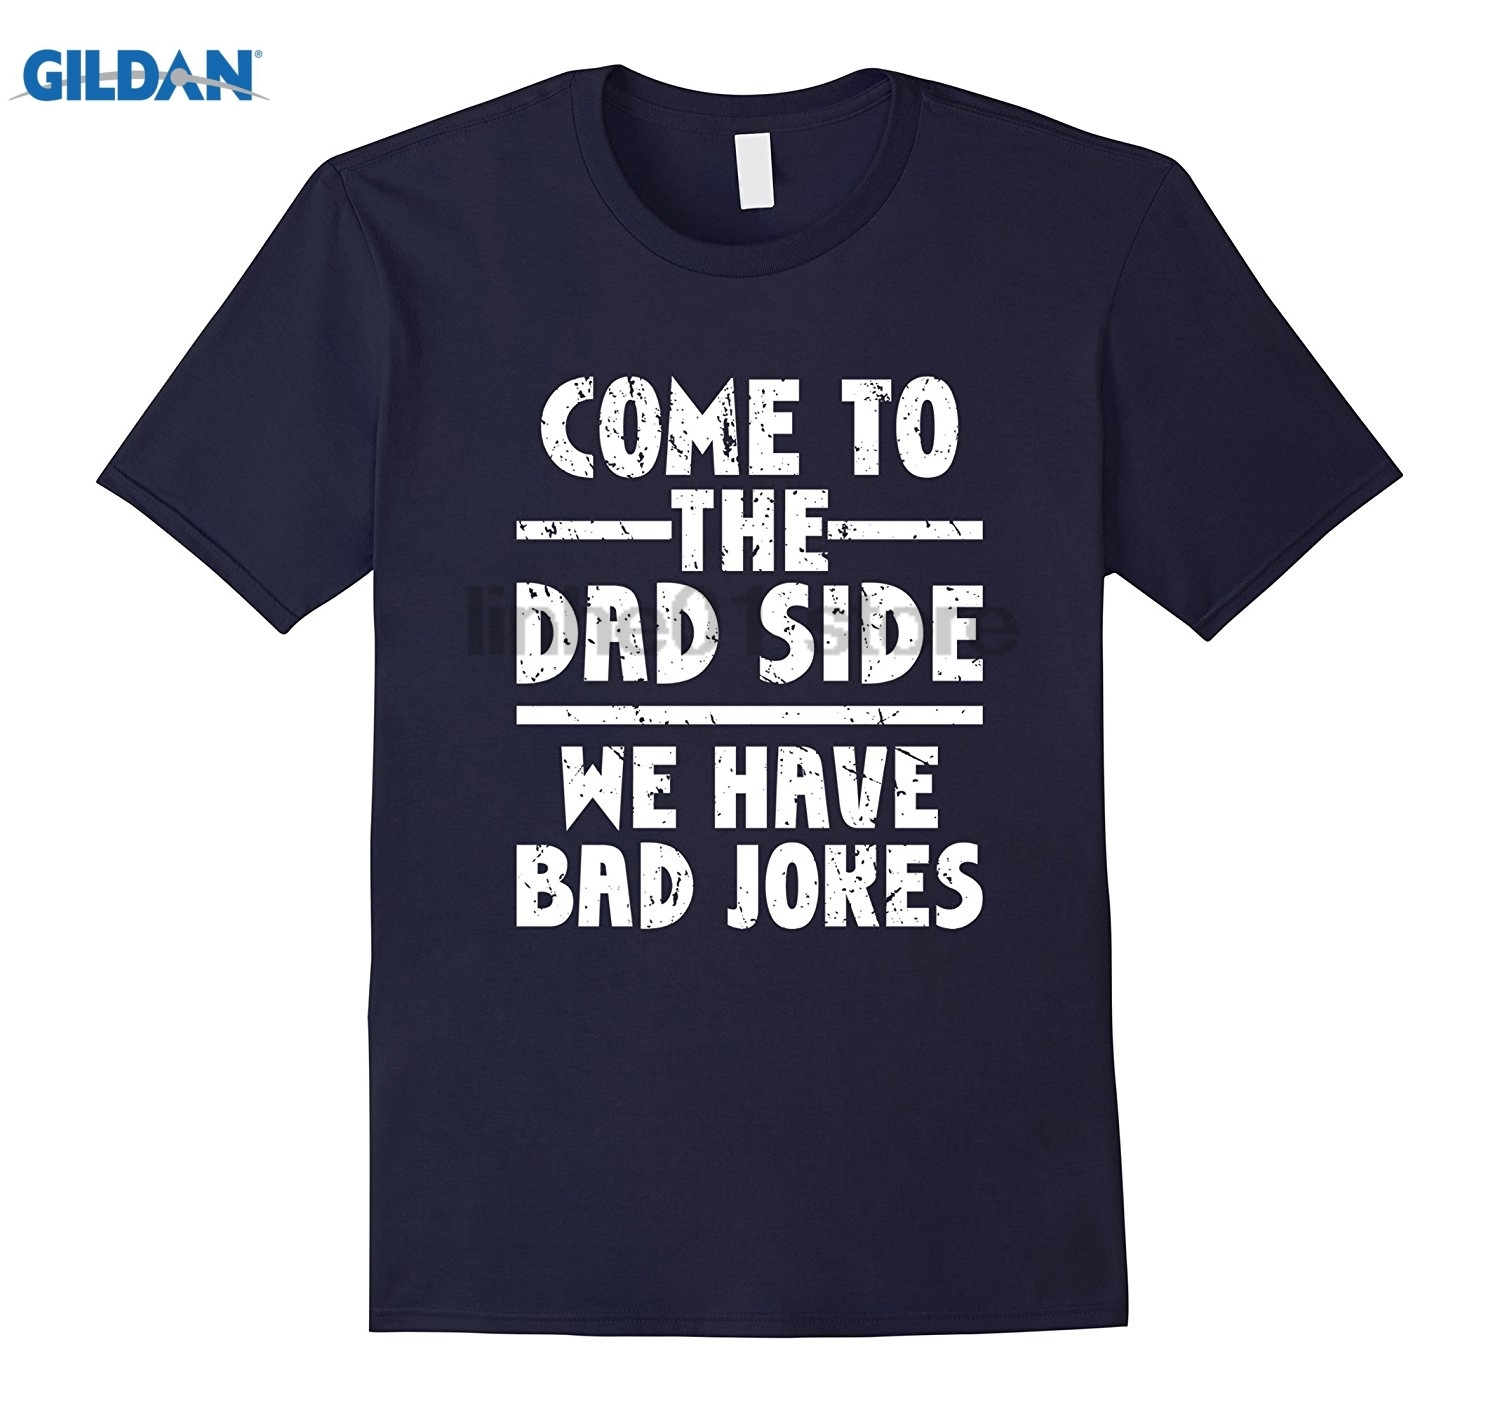 GILDAN Mens Come To The Dad Side We Have Bad Jokes T Shirt Funny Saying Mothers Day Ms. T-shirt dress T-shirt